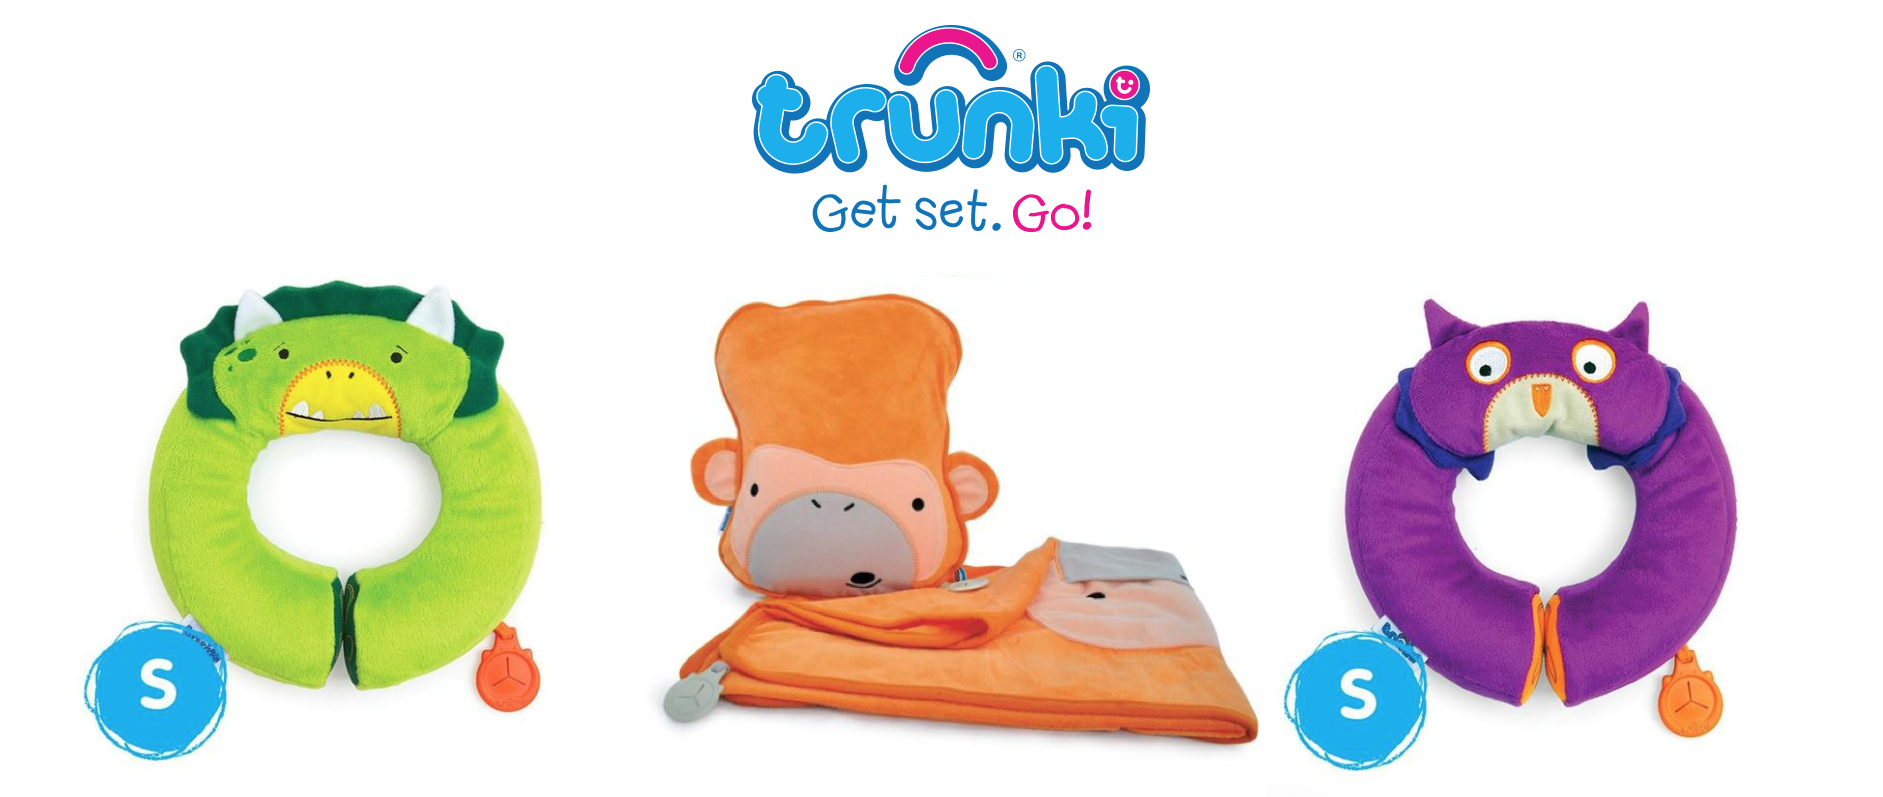 Trunki - Best Travel Pillows On The Market